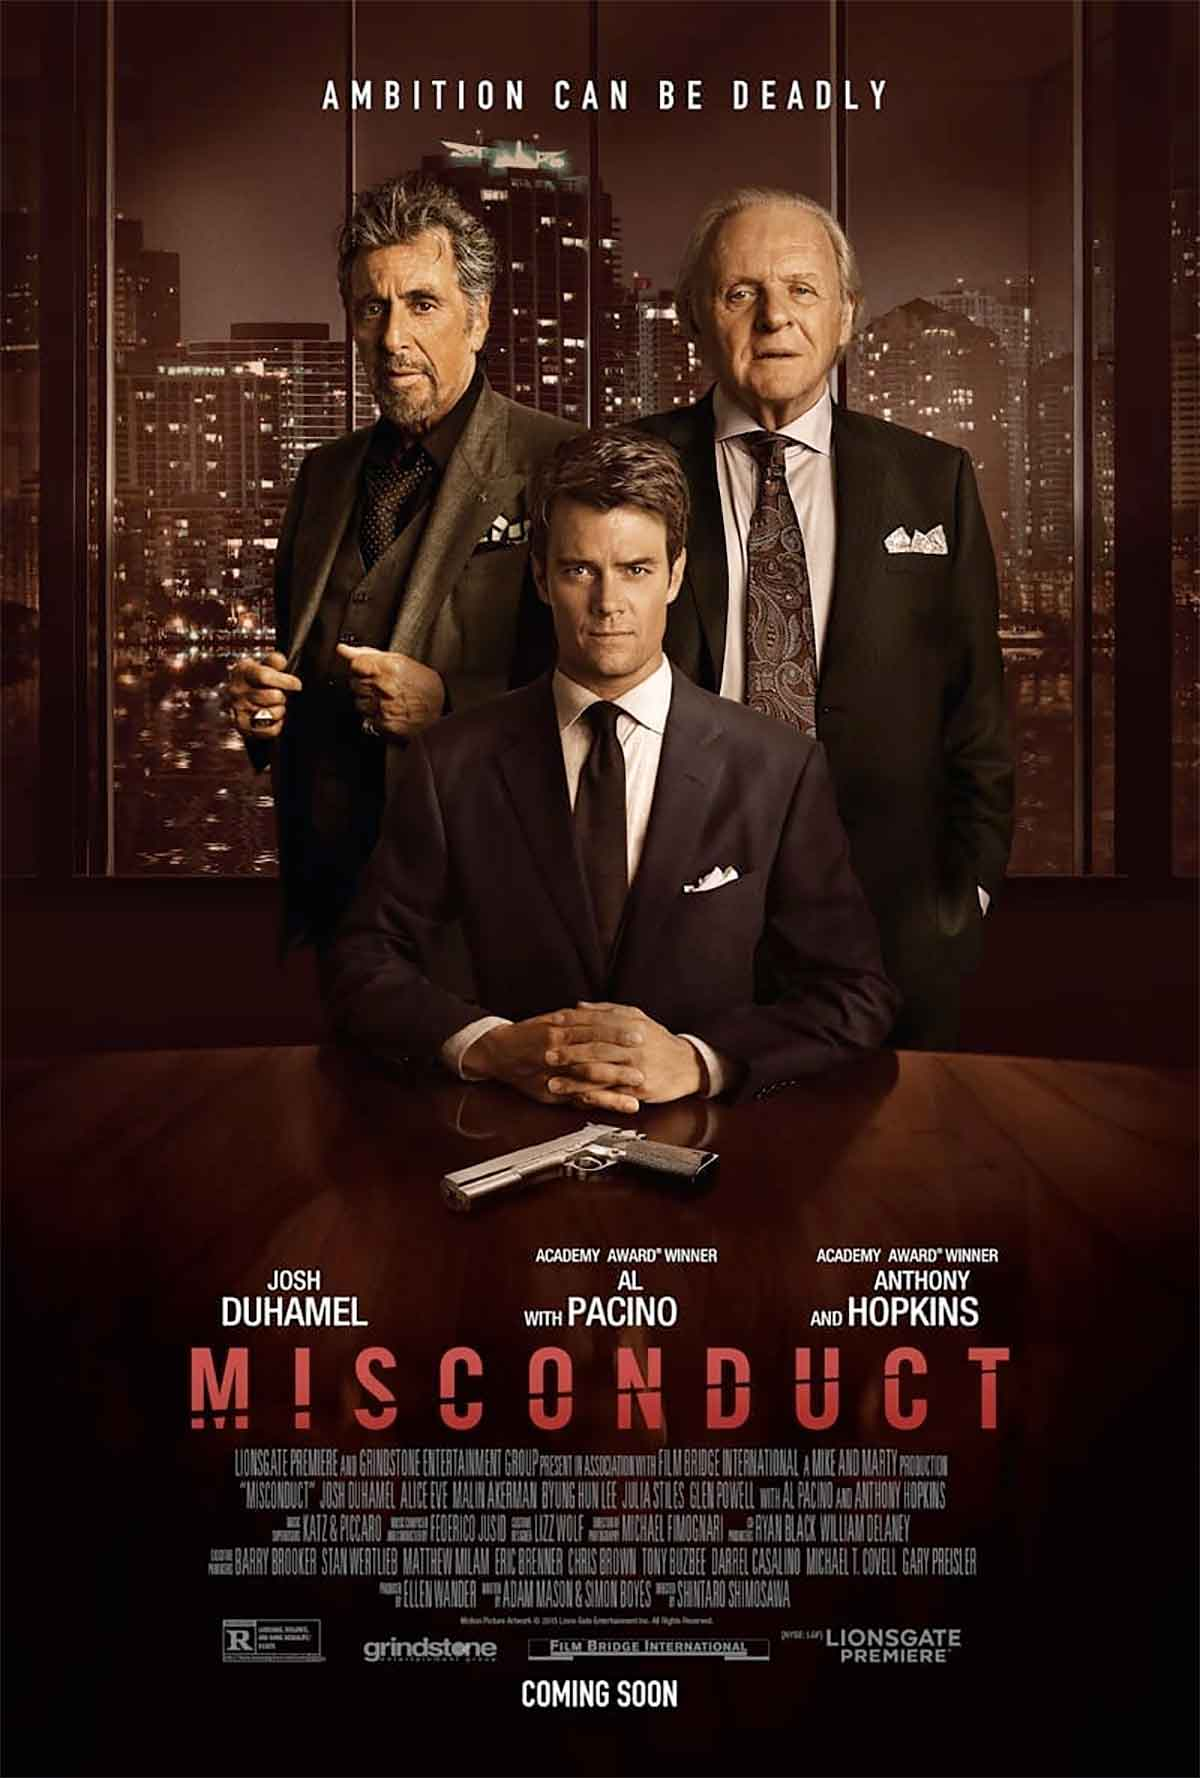 Misconduct Filminden Fragman ve Poster Geldi